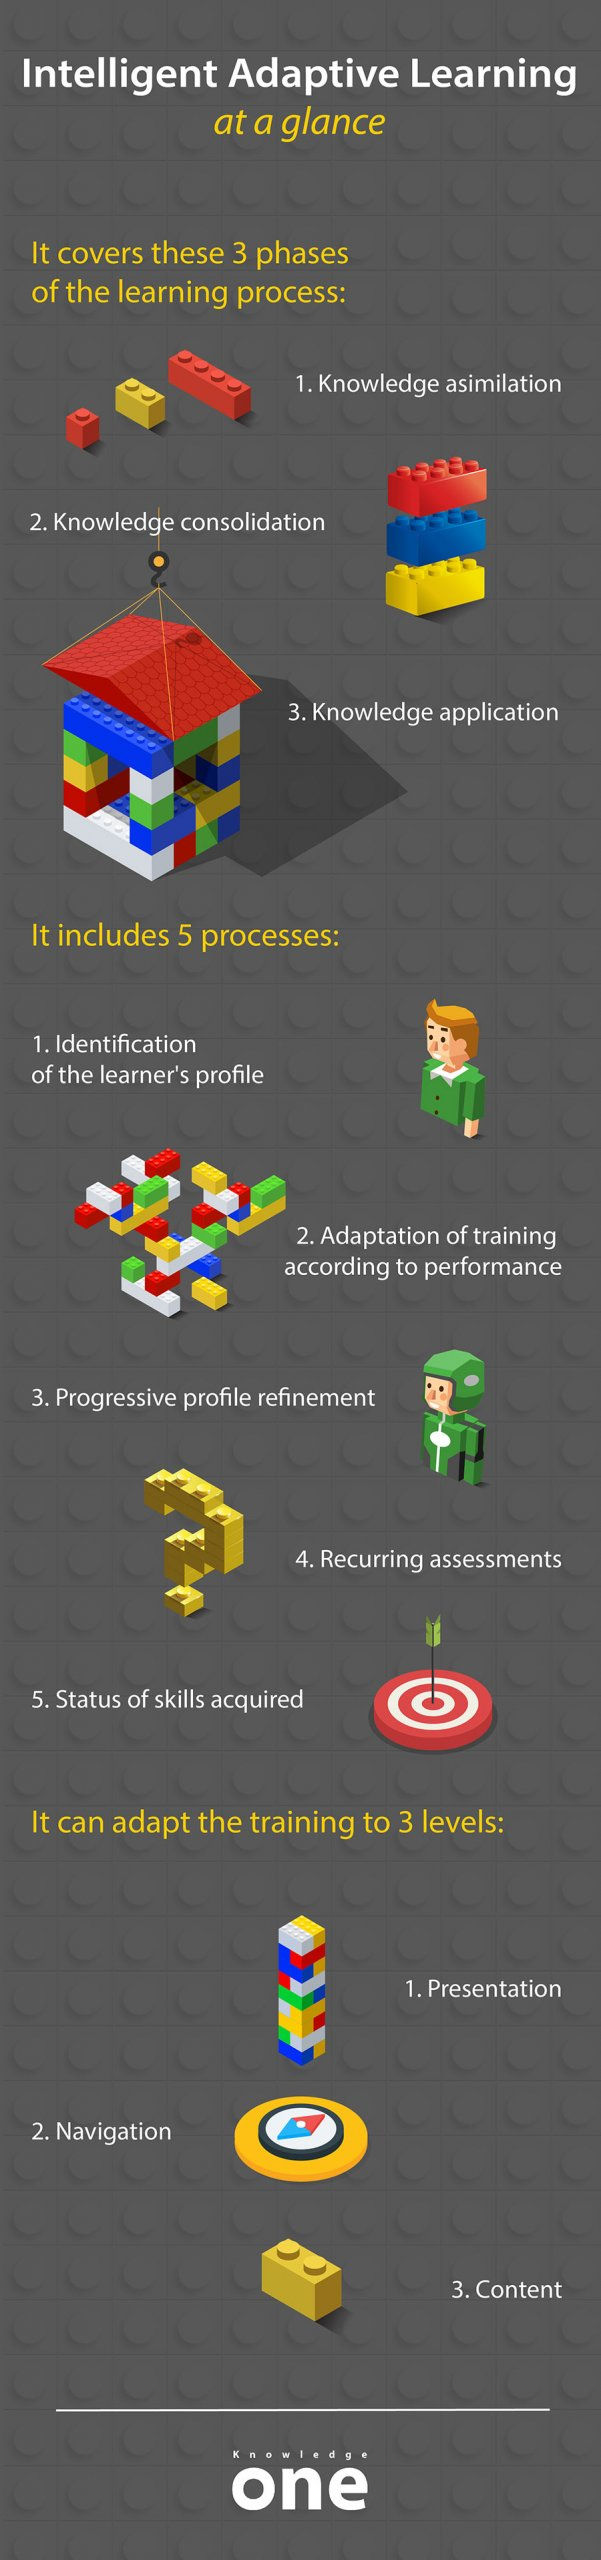 Infographic on the stages of adaptive learning